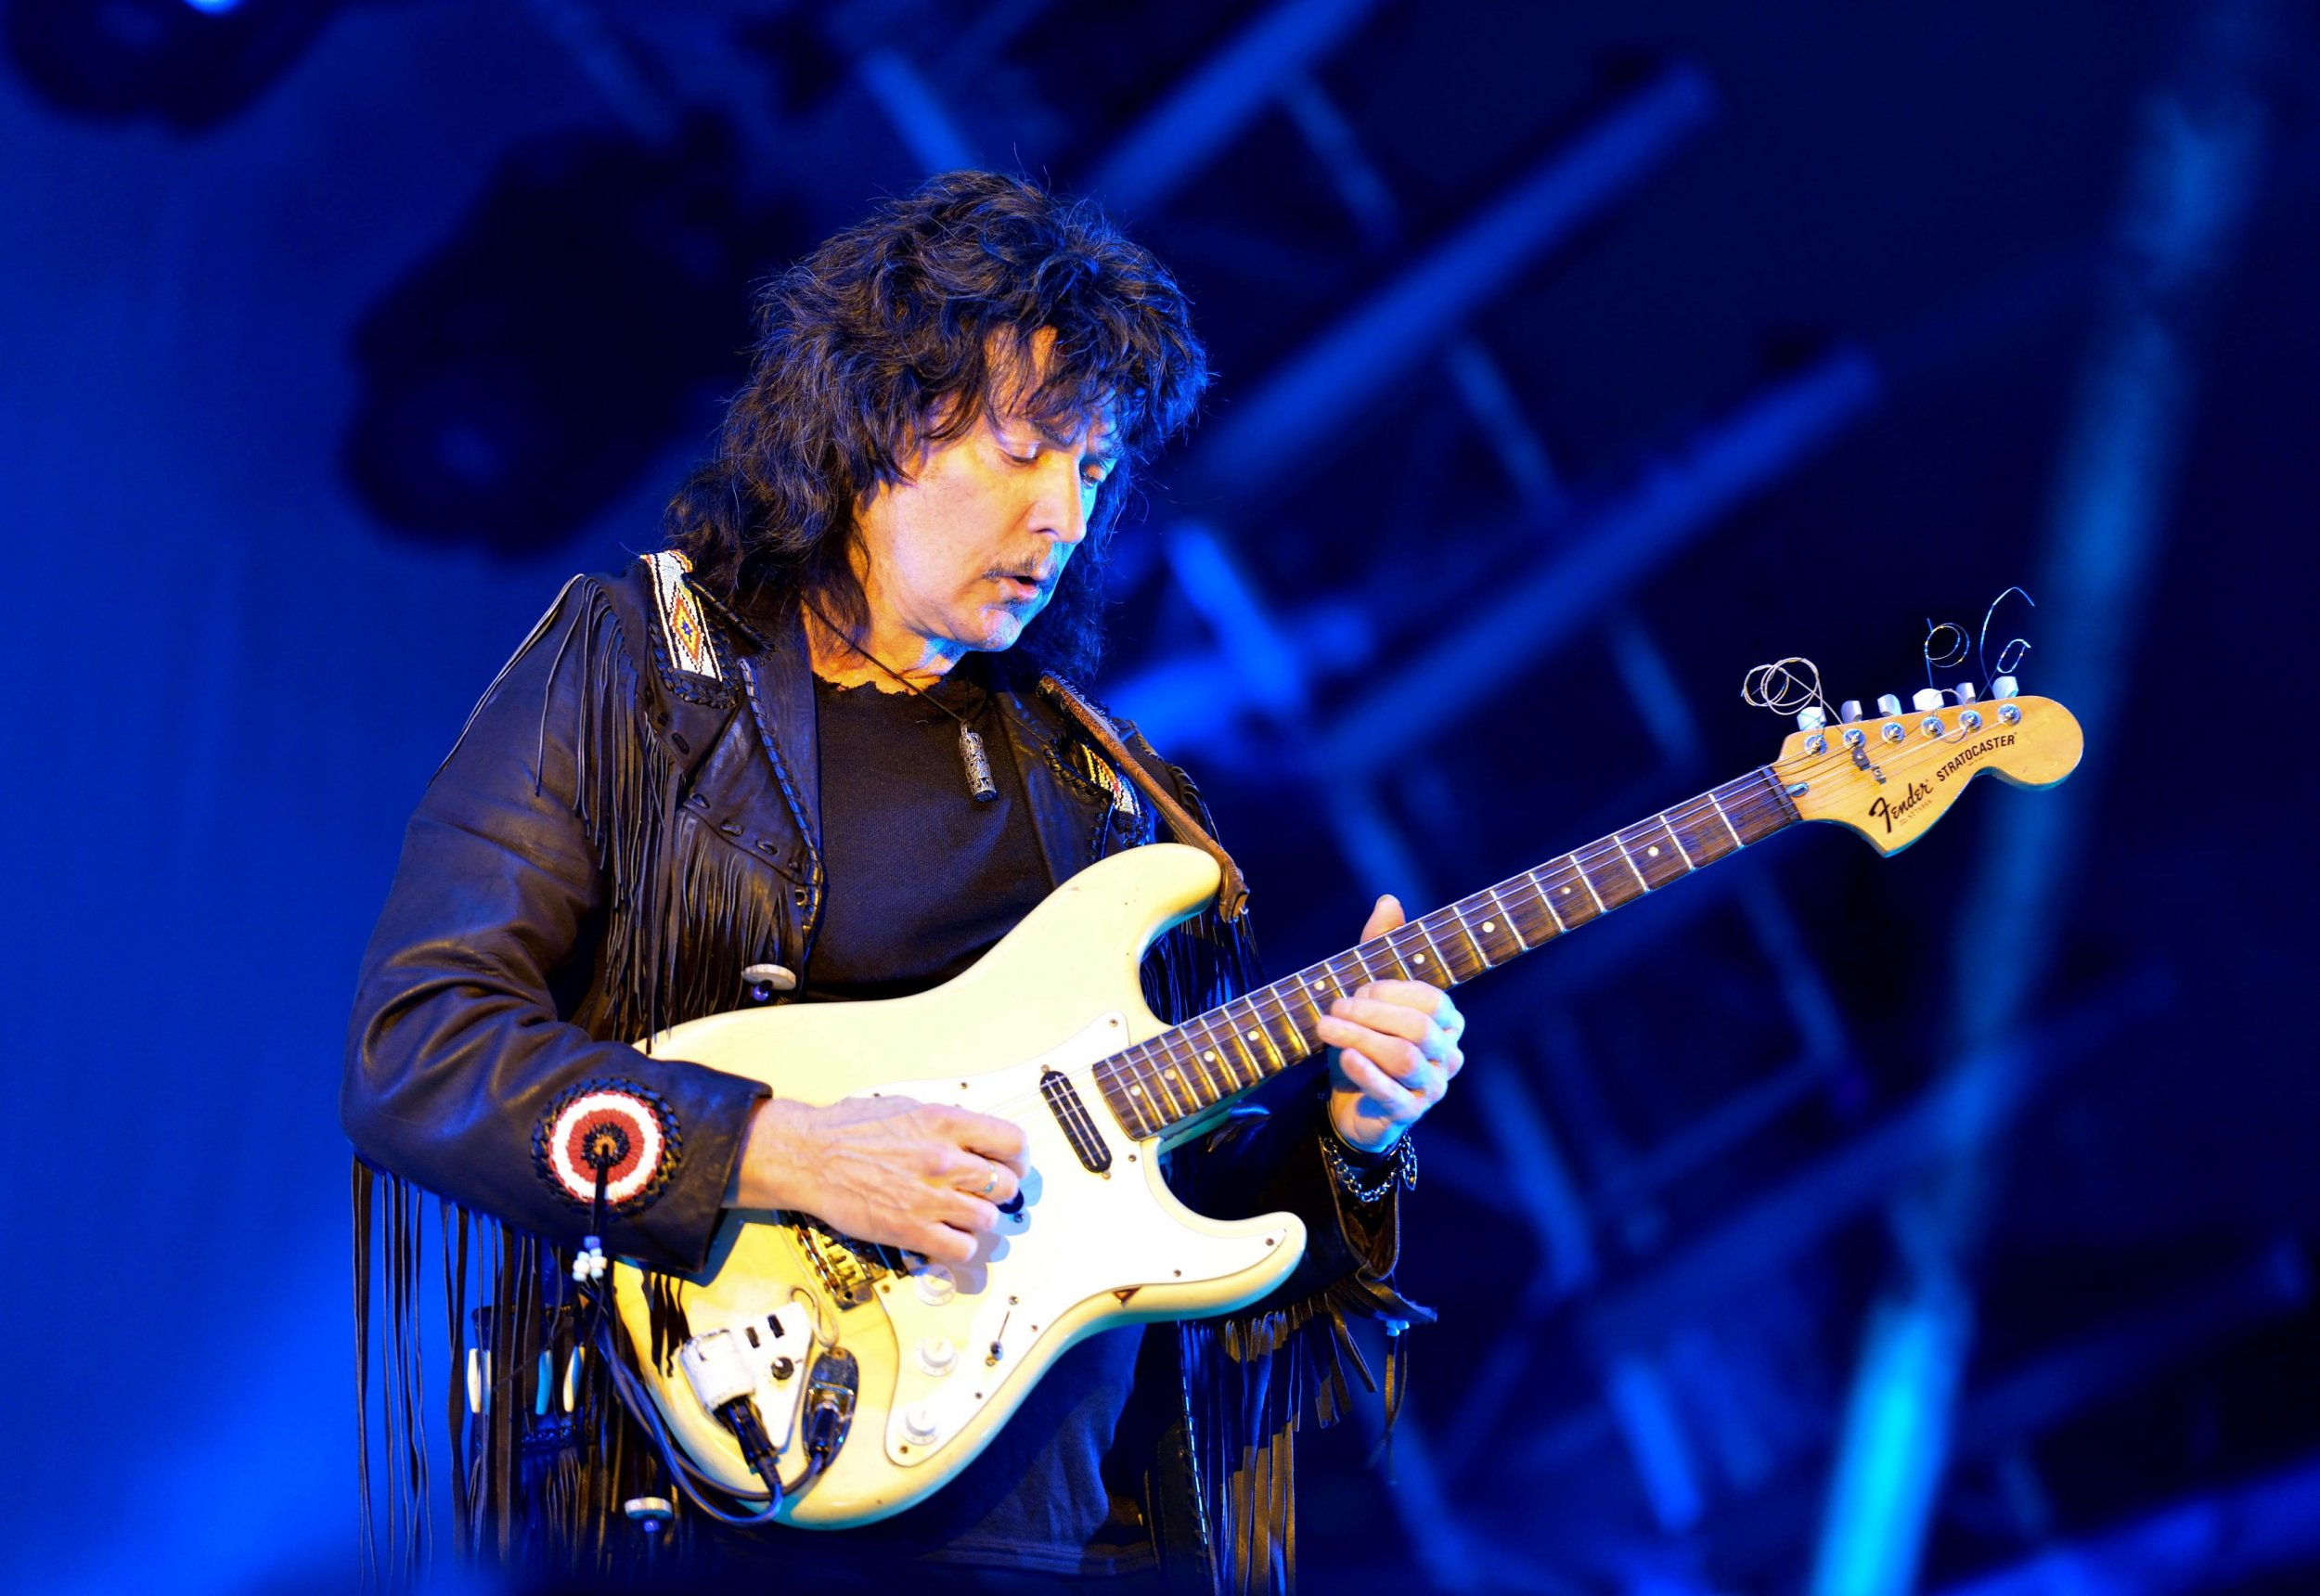 Ritchie Blackmore's Renaissance: From Deep Purple to ...